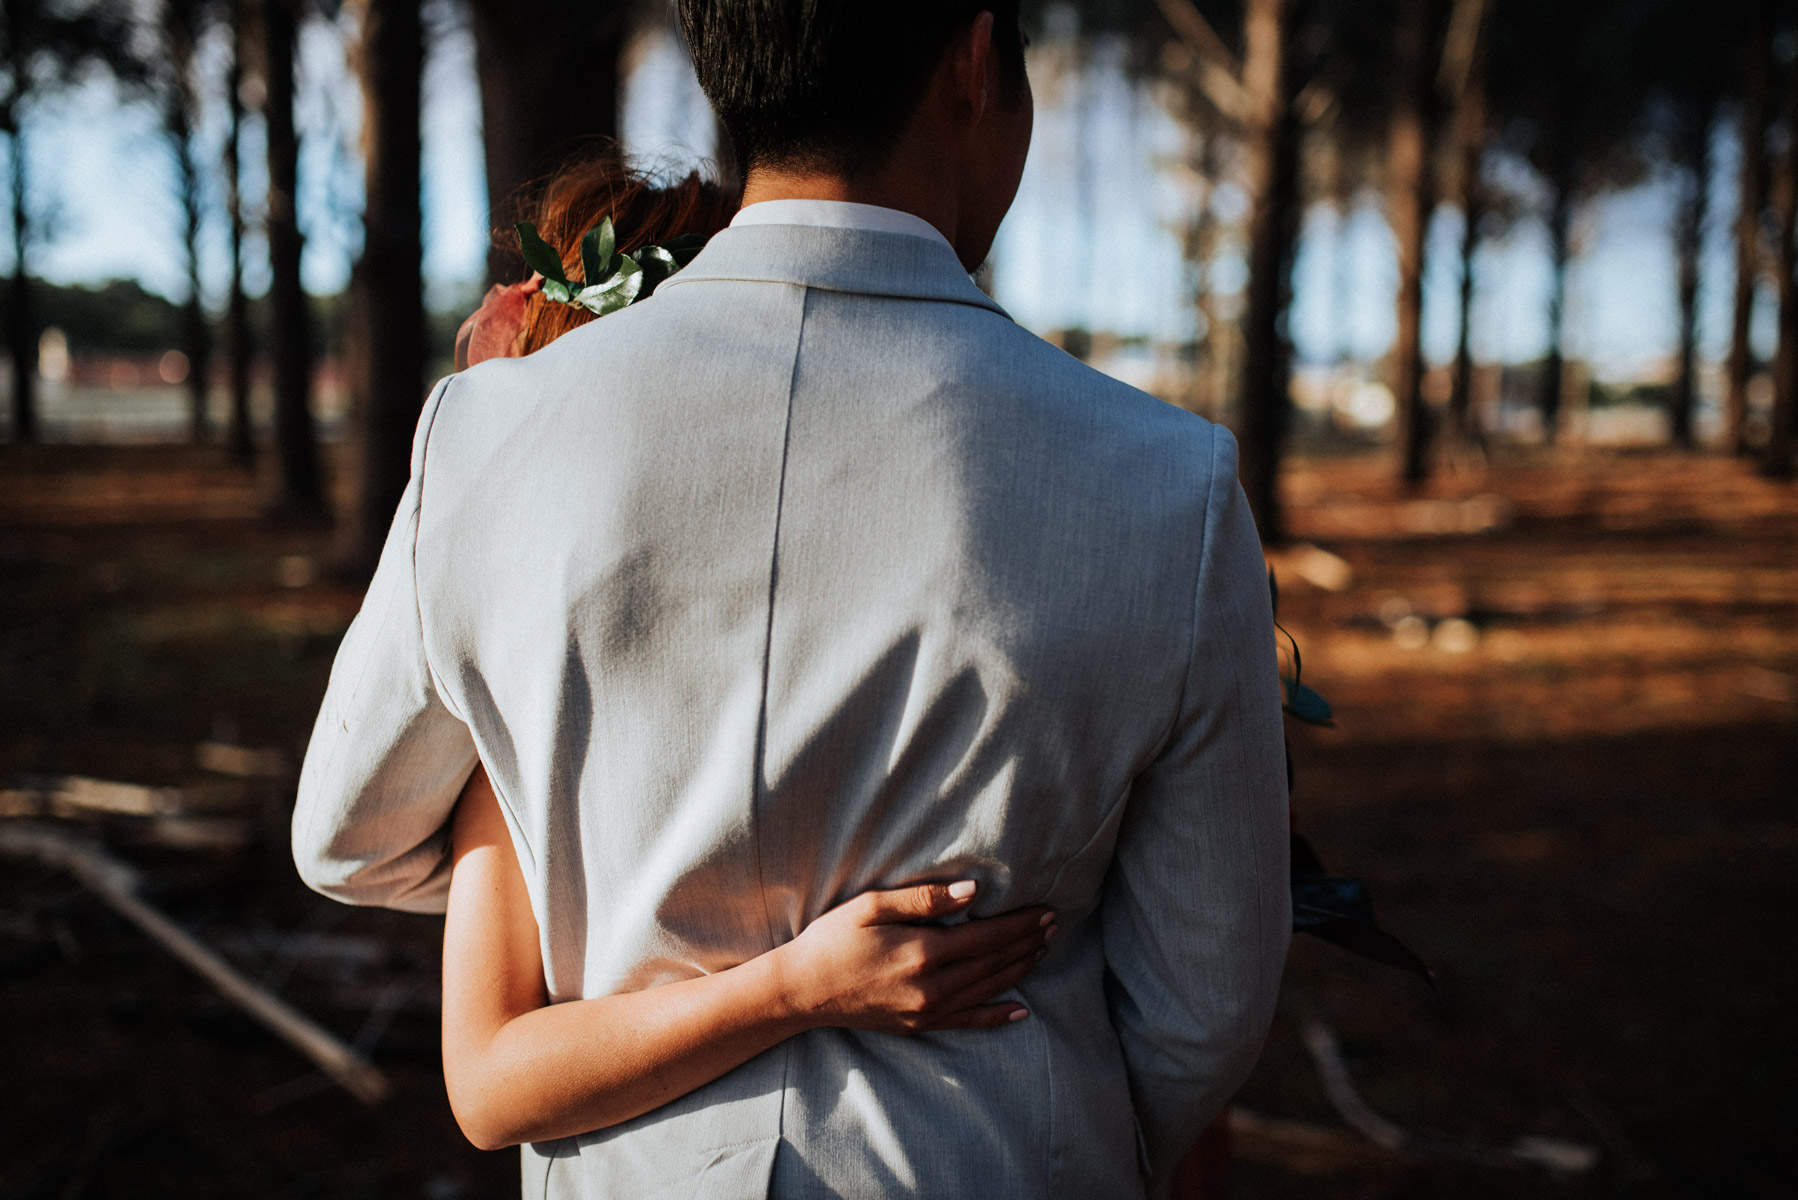 james-julene-forest-elopement-perth-28.JPG